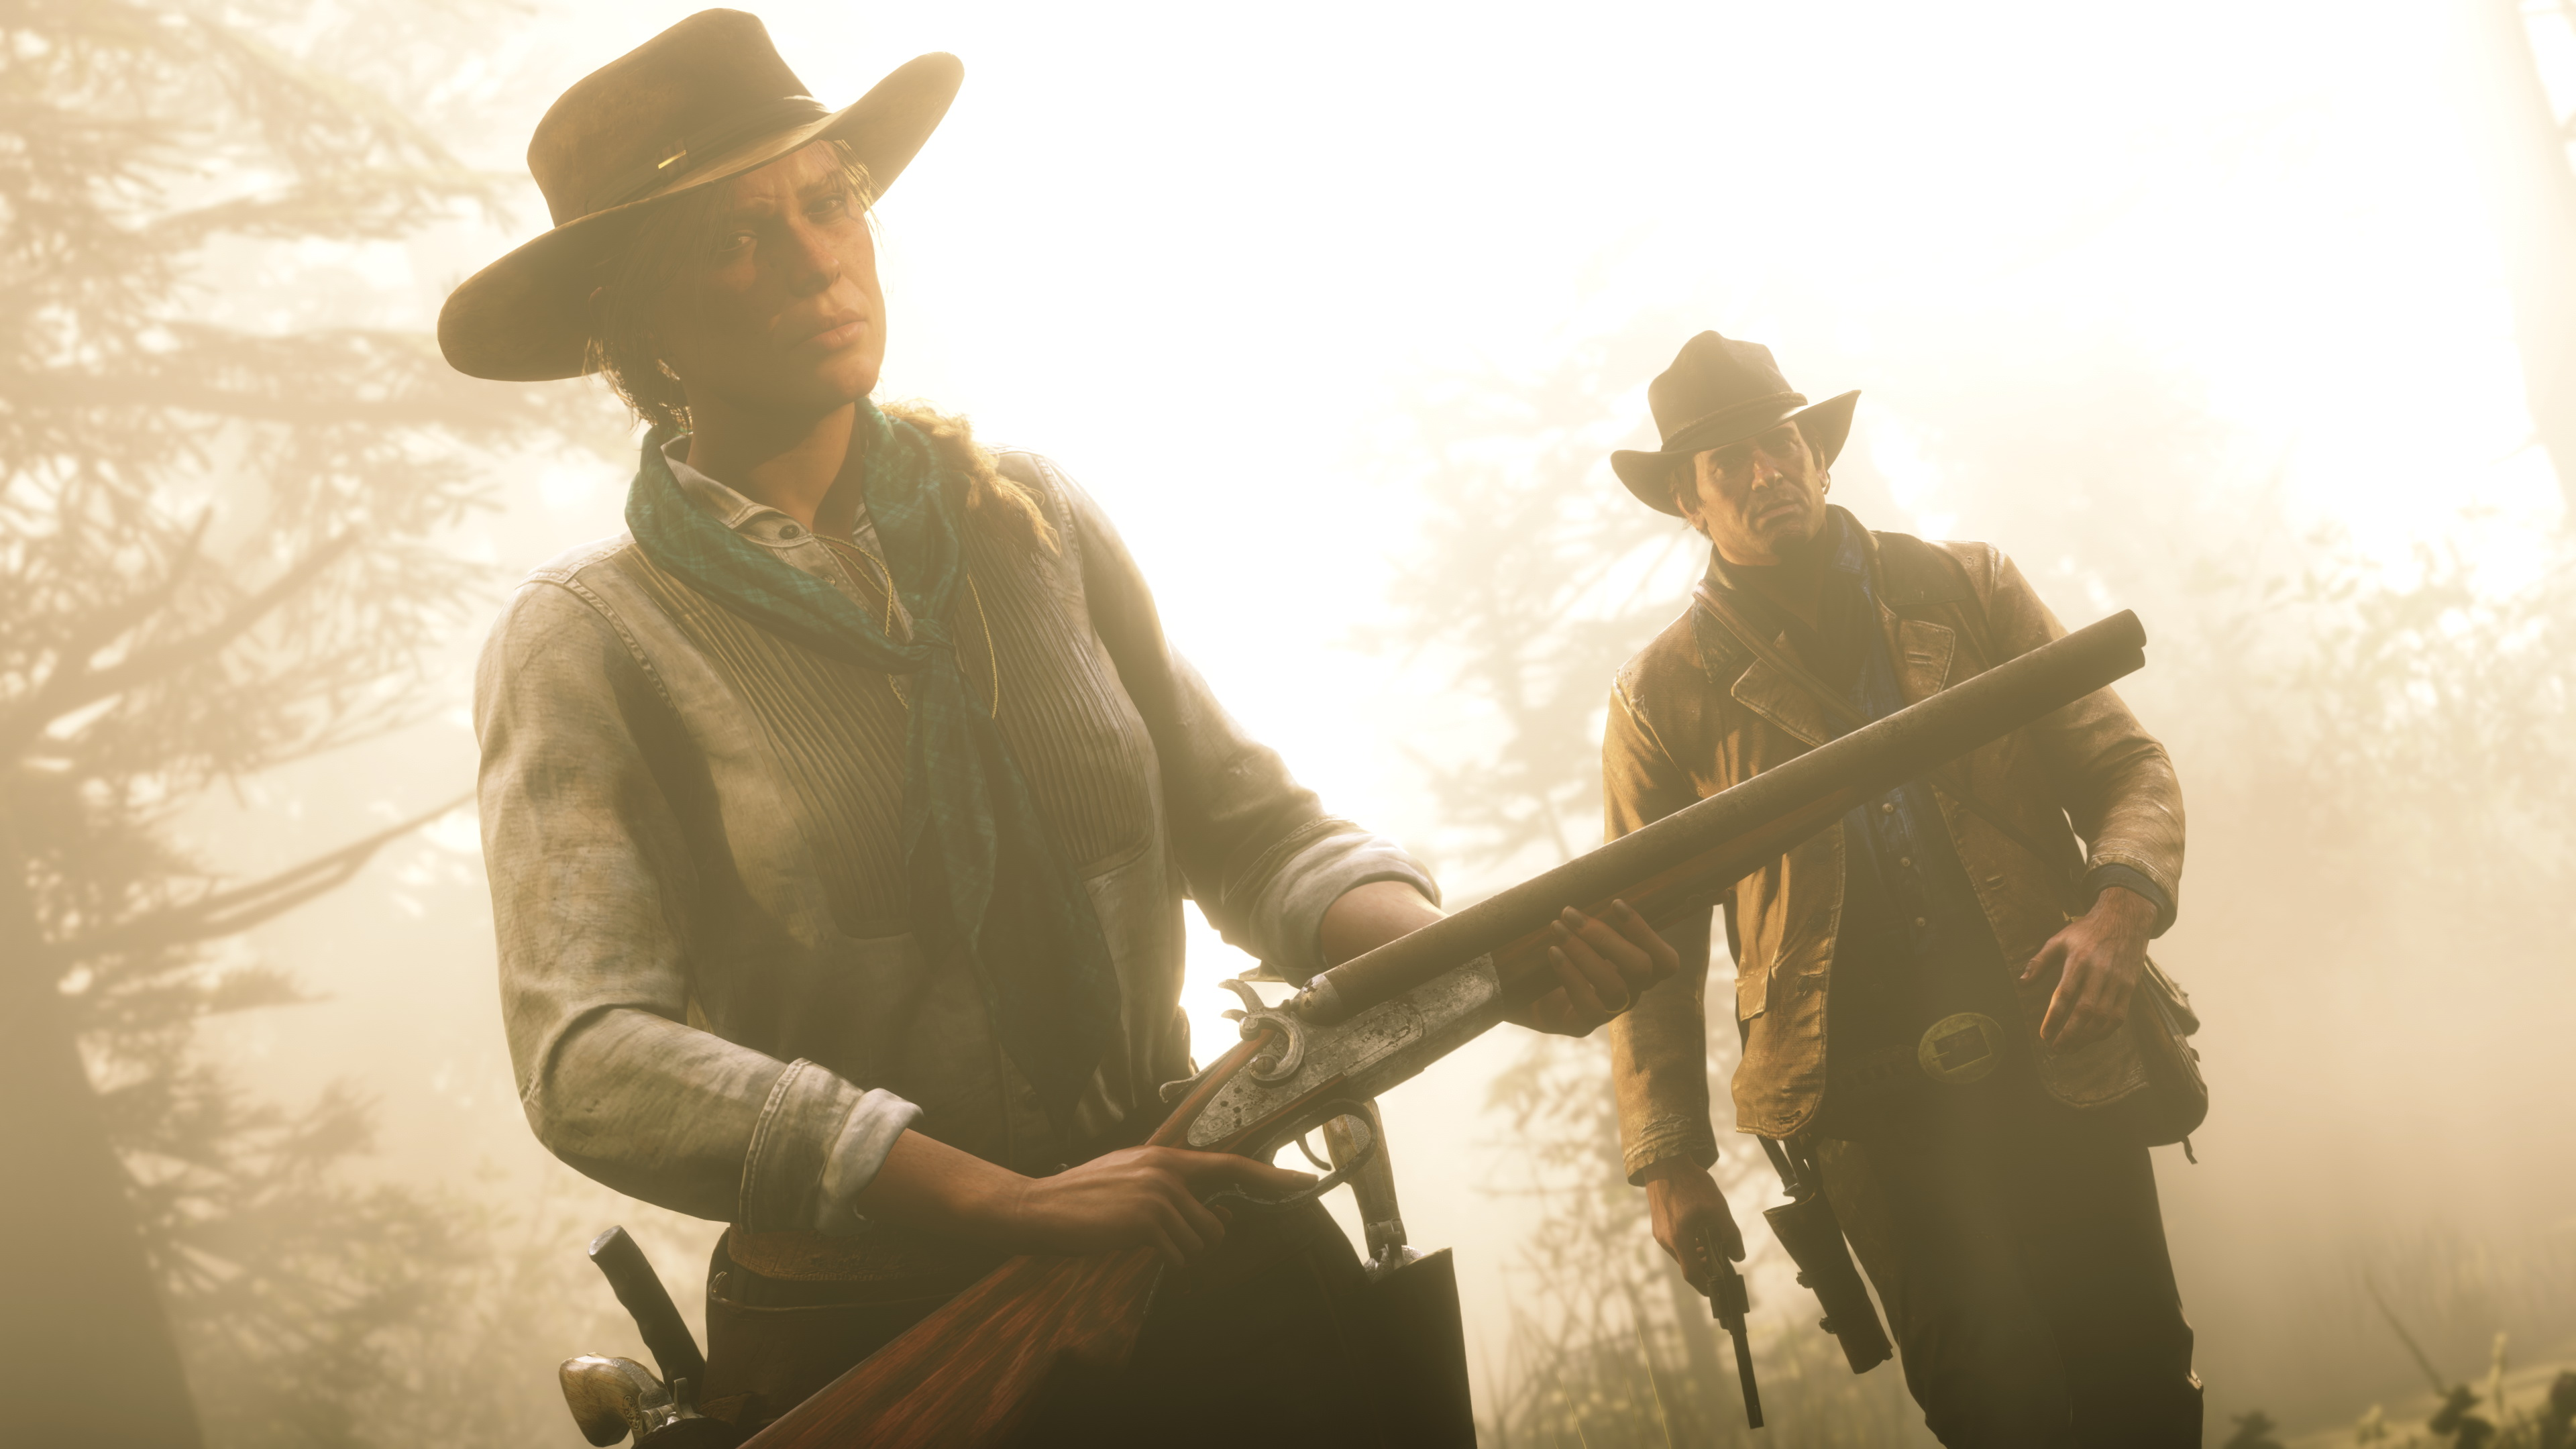 a woman and a man, both wearing cowboy hats and holding guns, in Red Dead Redemption 2